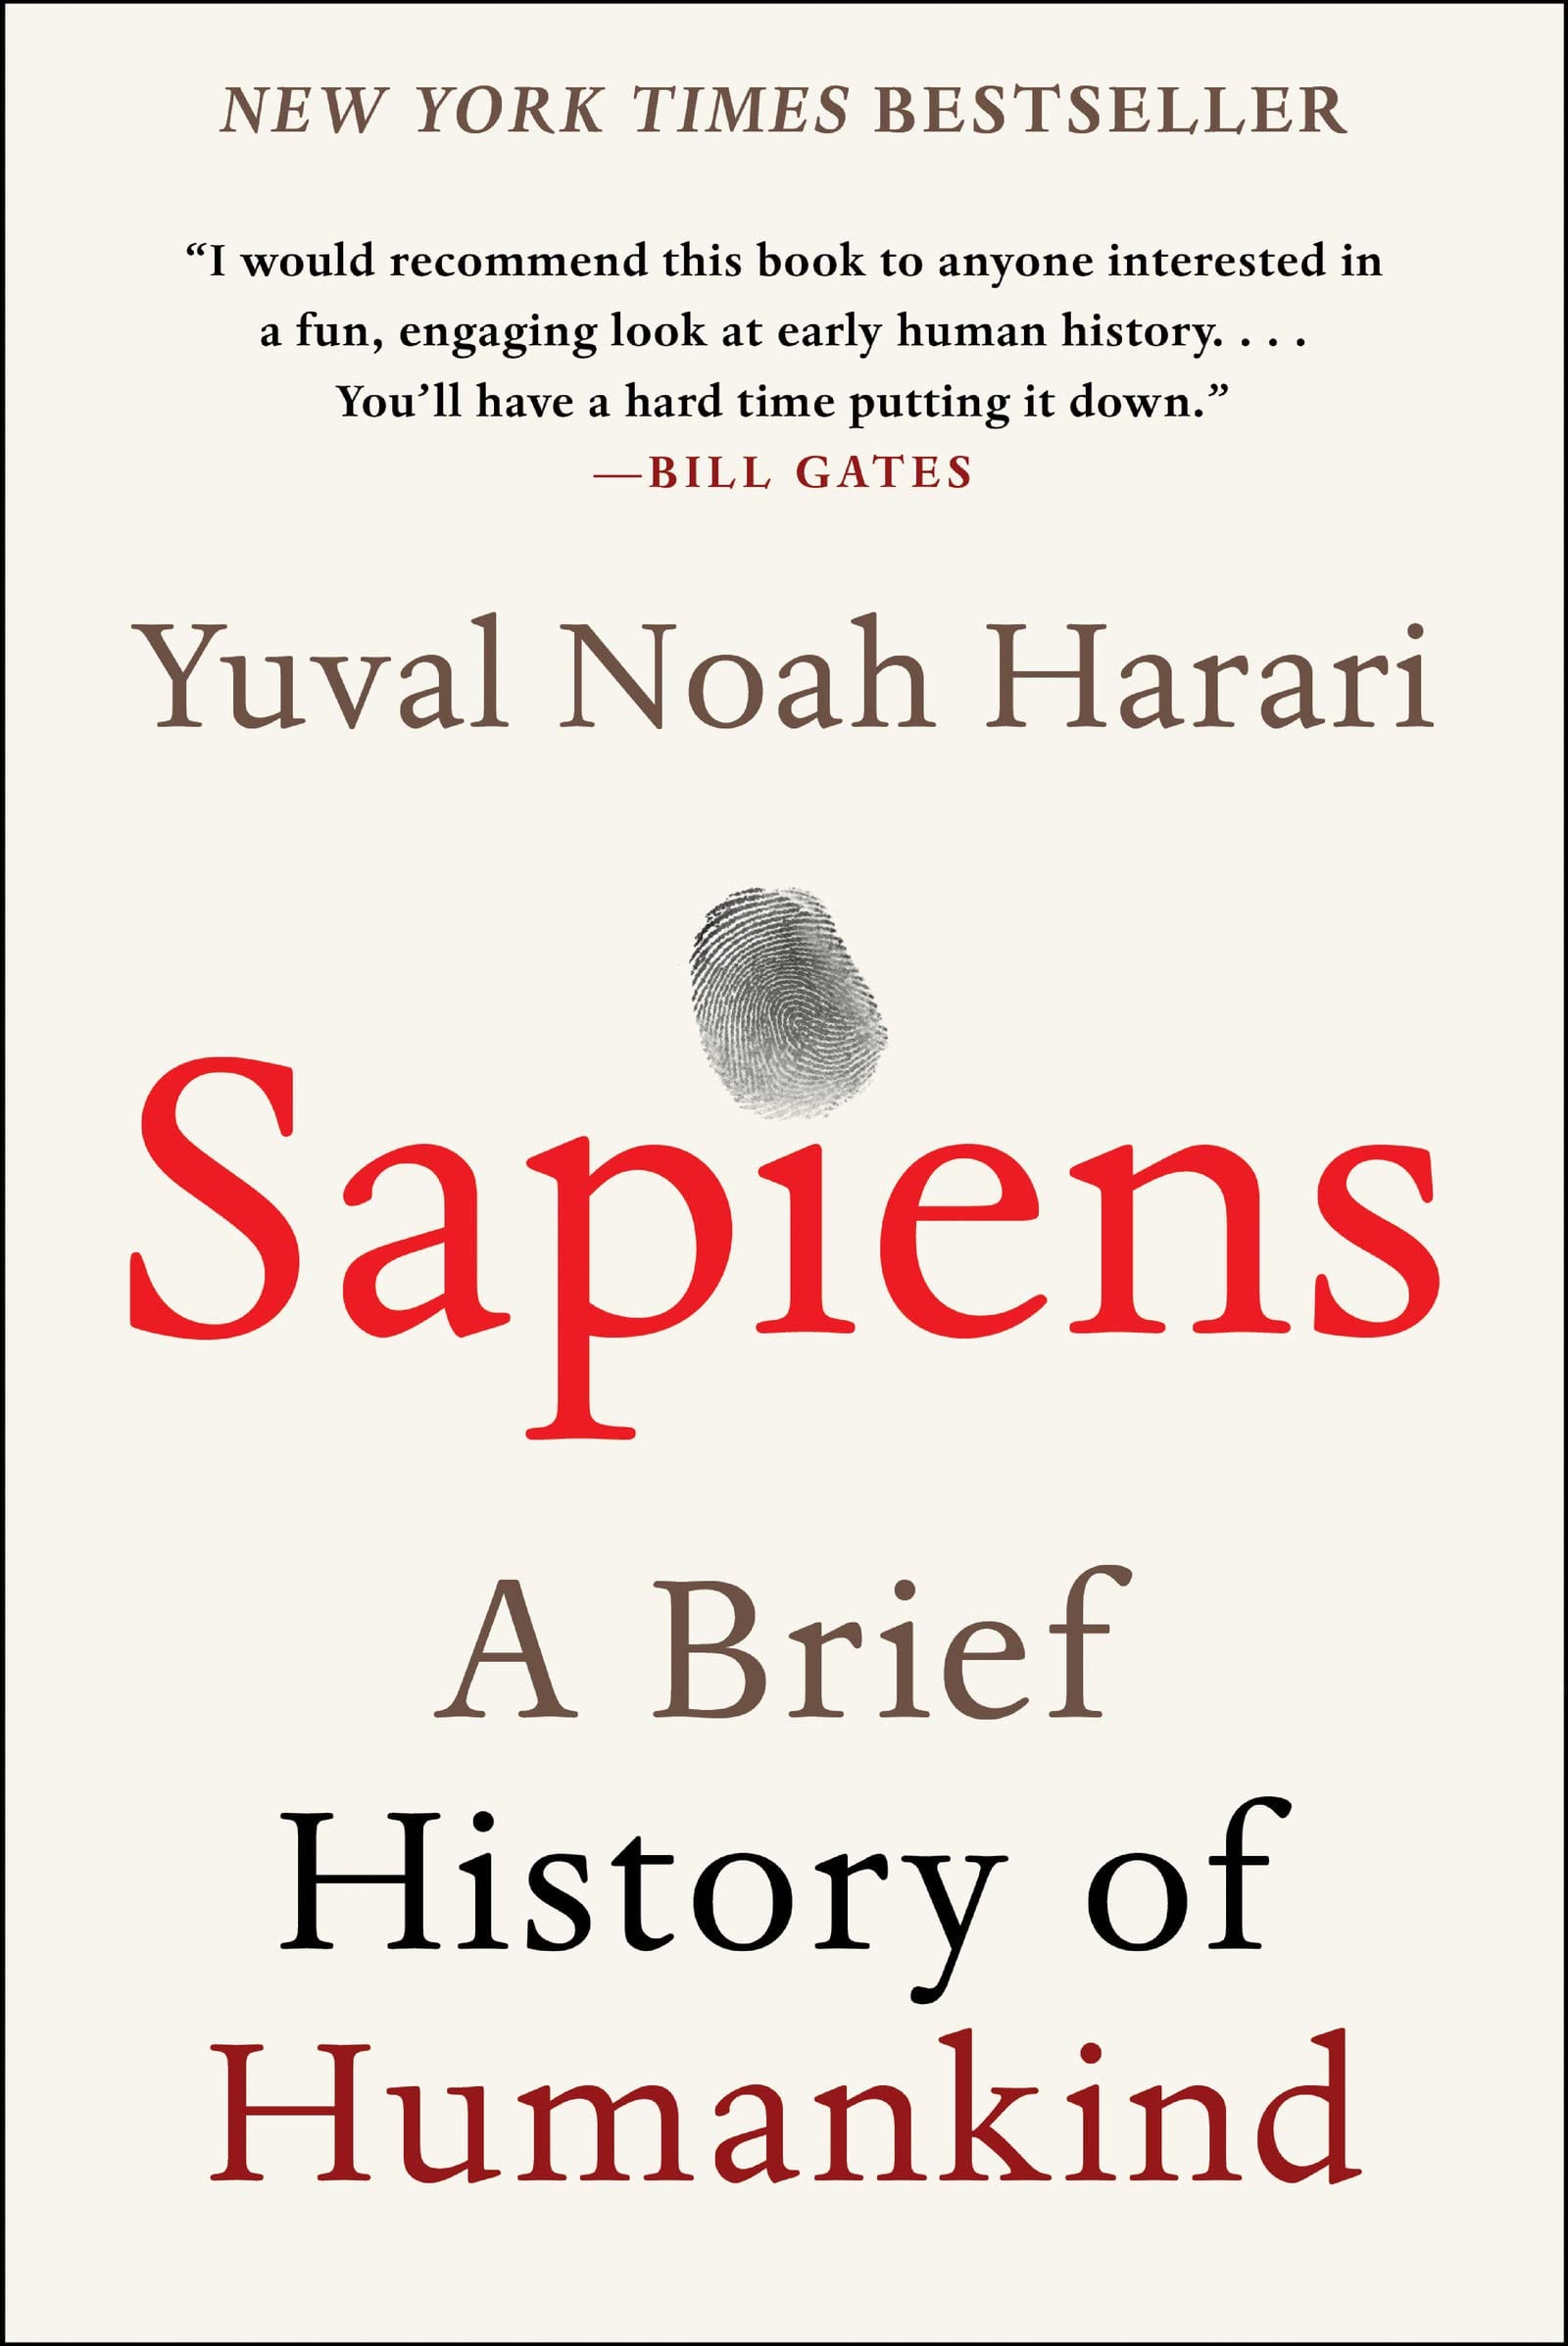 gustobeats book club for self development book sapiens a brief history of humankinds